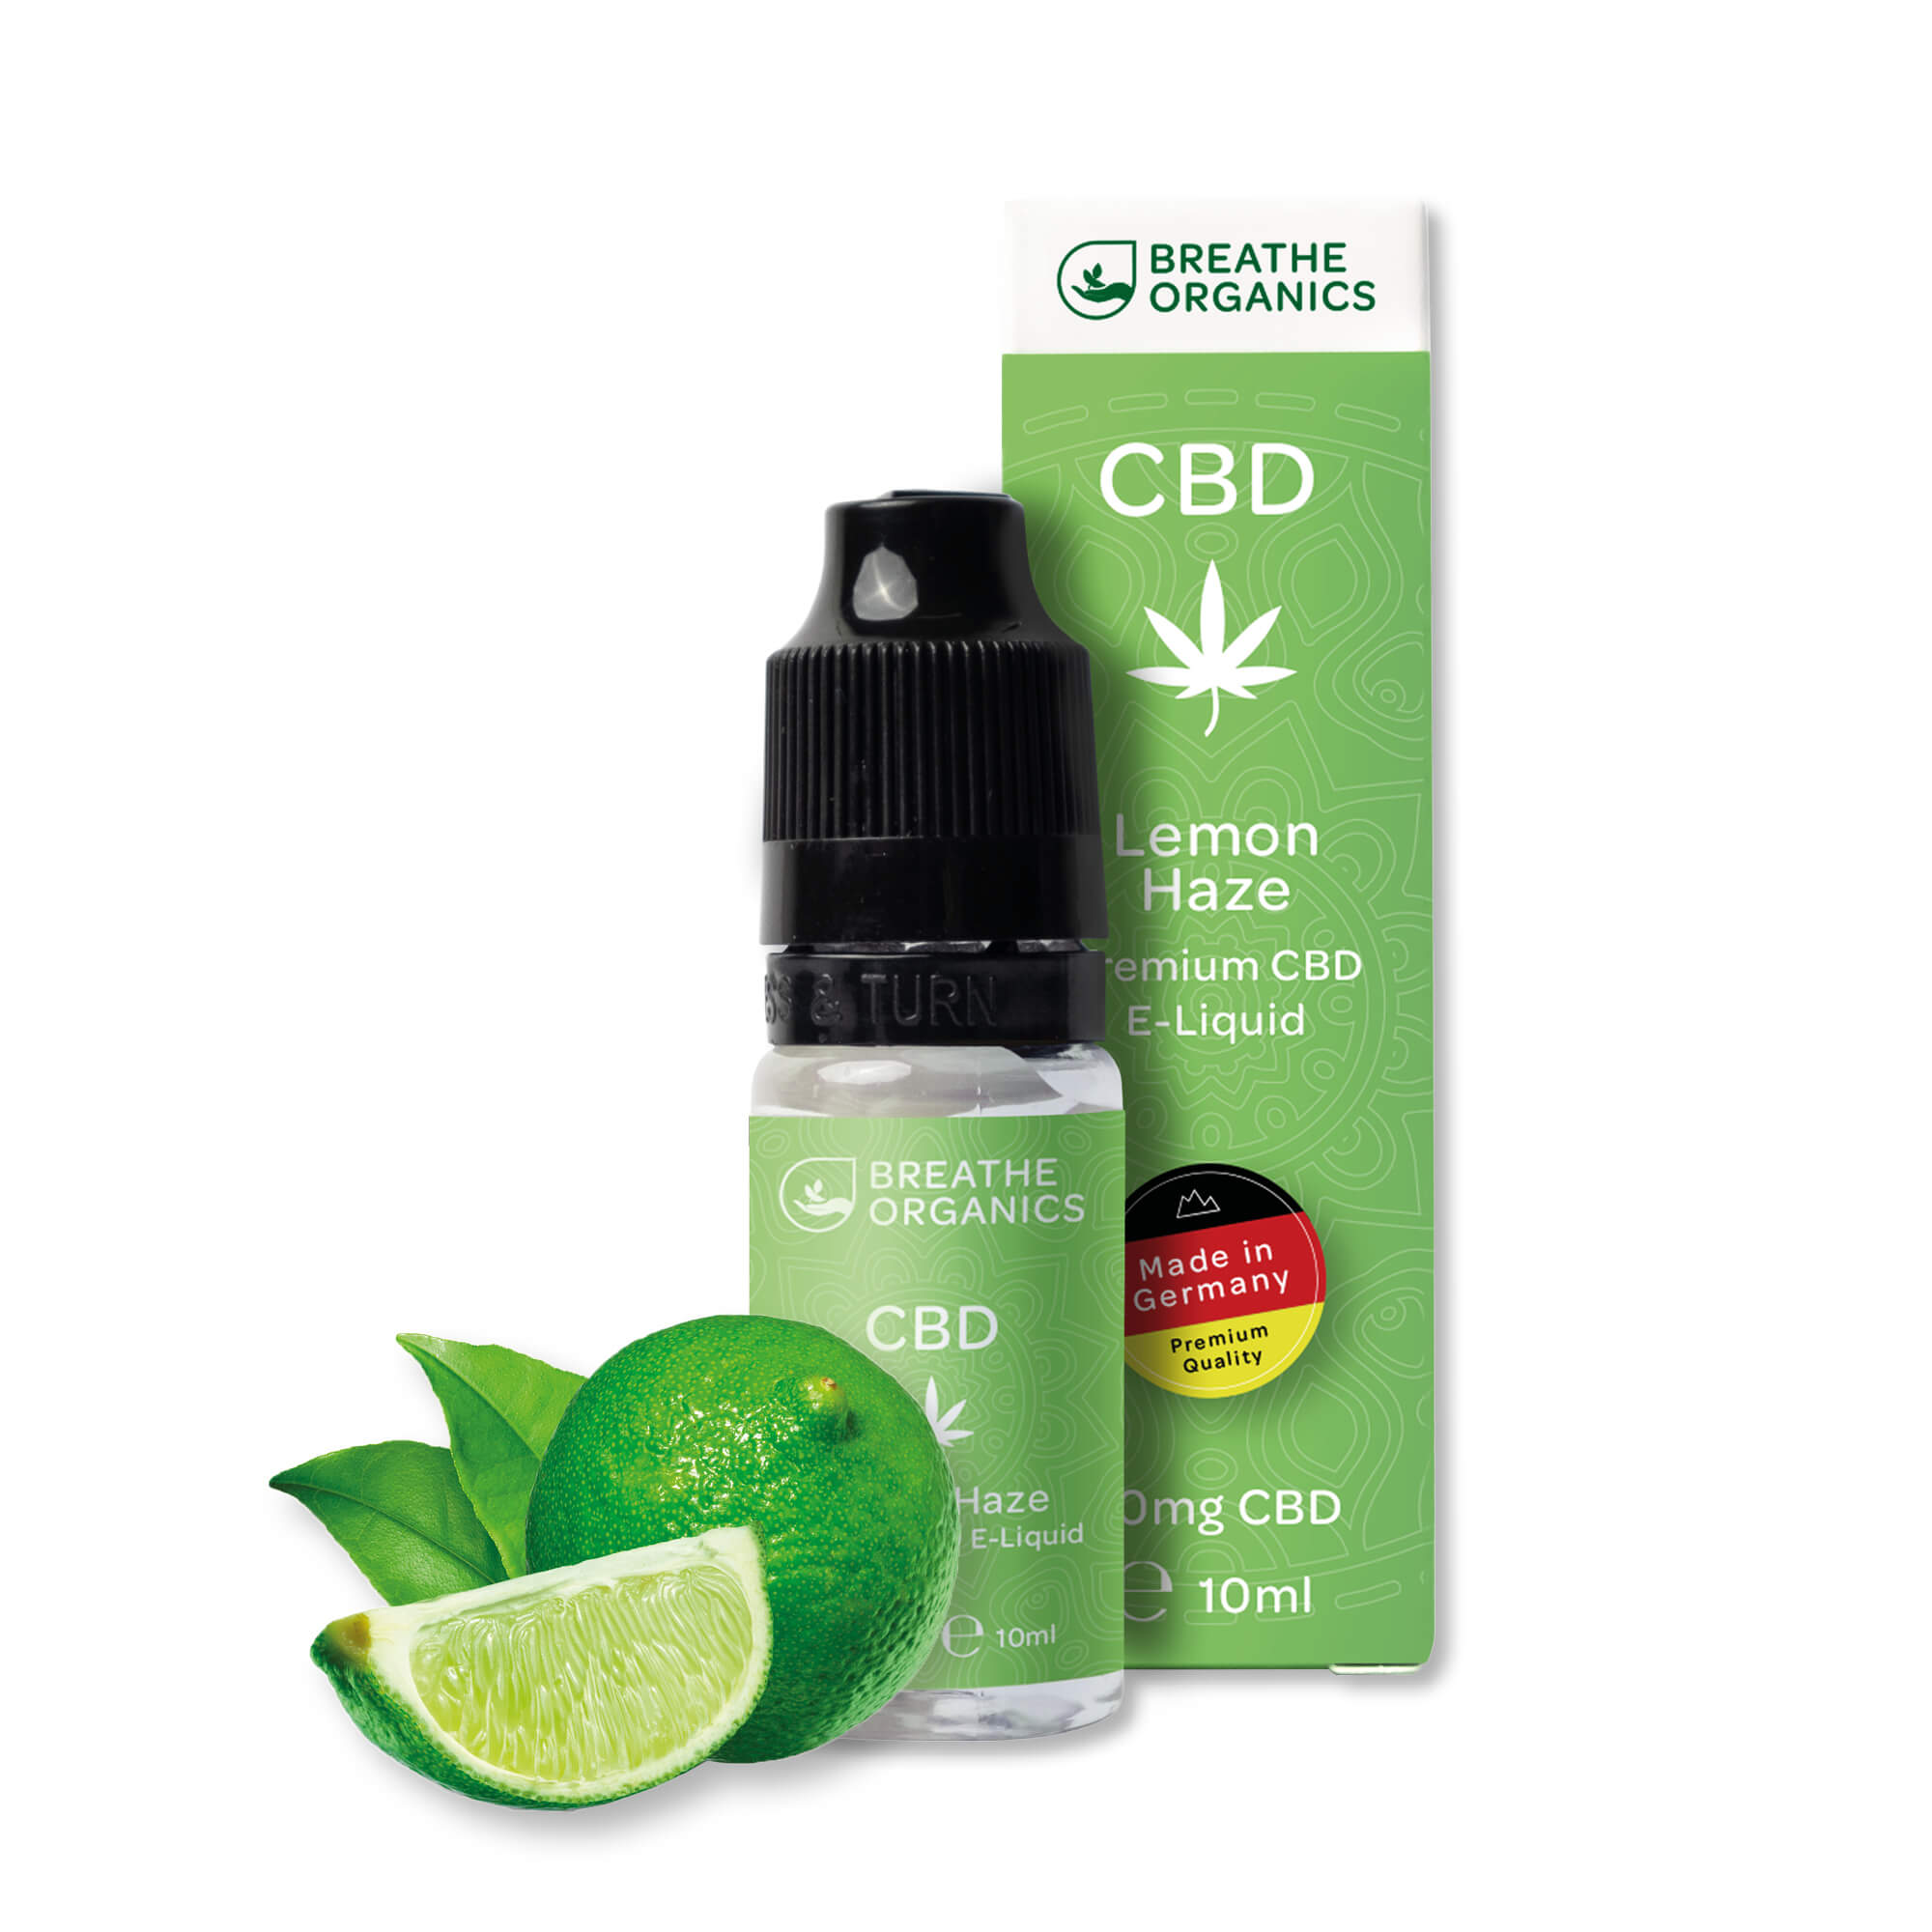 Breathe Organics - CBD Liquid Lemon Haze 600mg